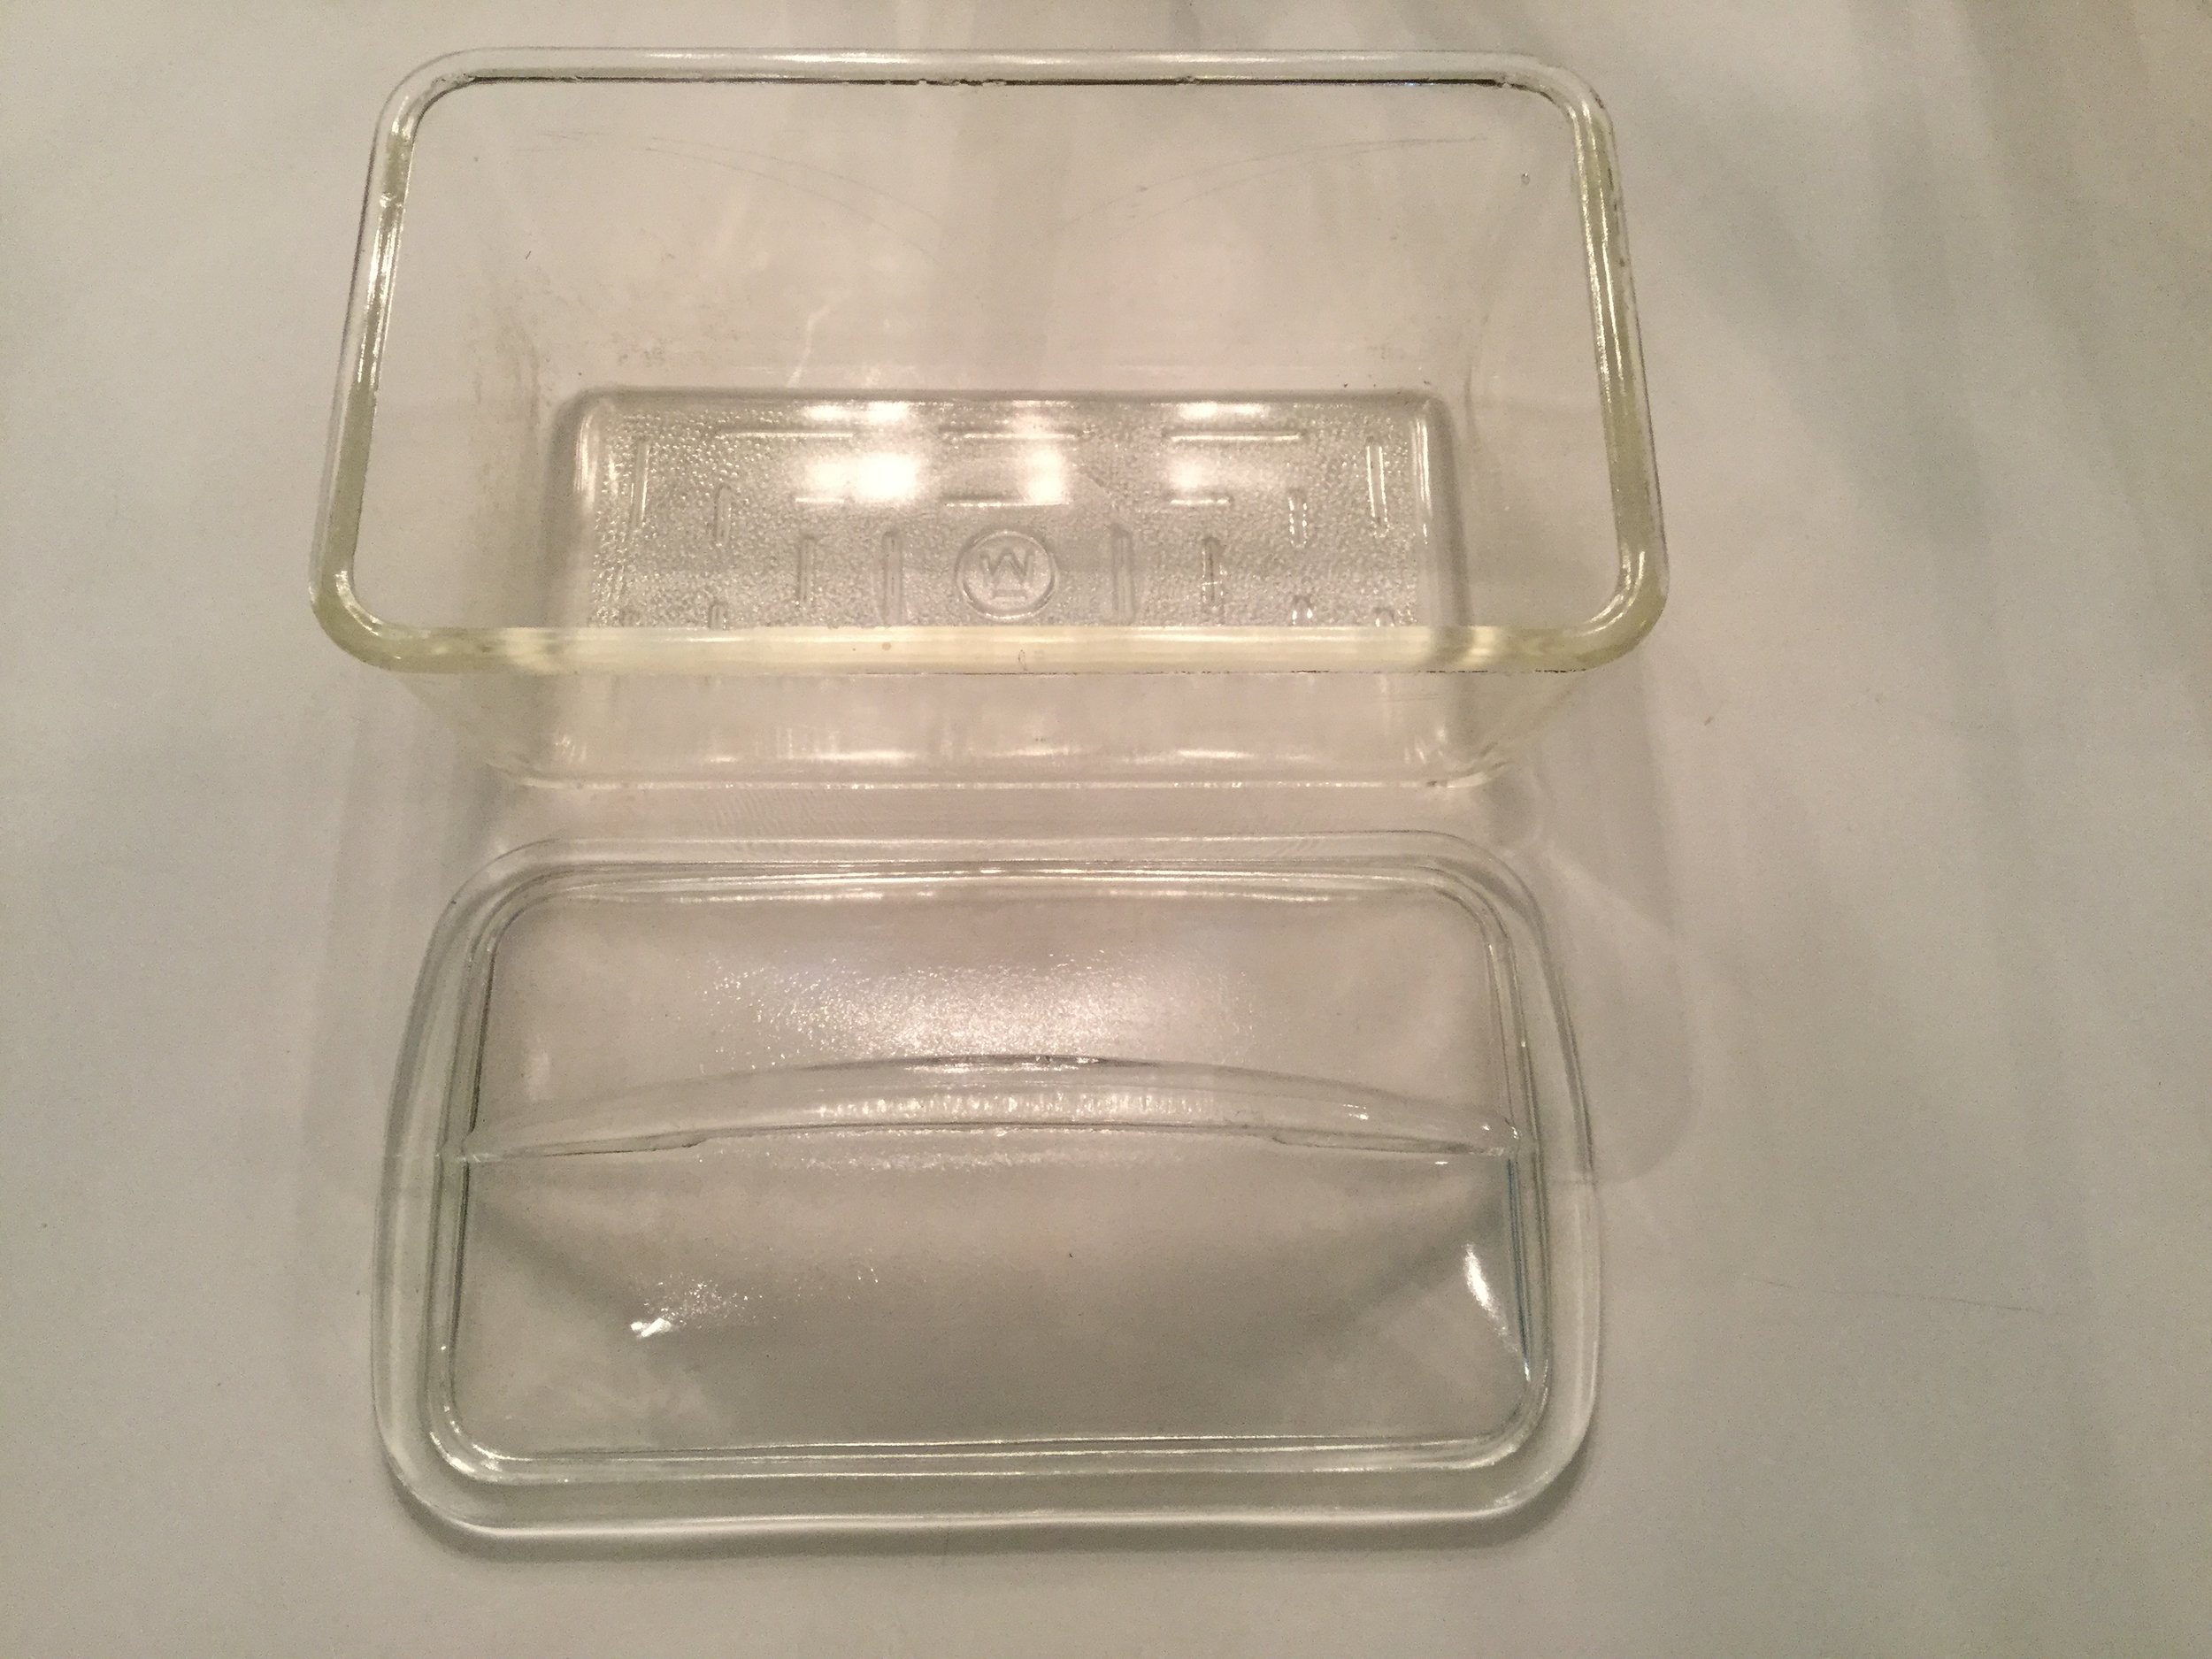 The Westinghouse logo on the glass loaf dish ... there is a small logo on the handle of the lid